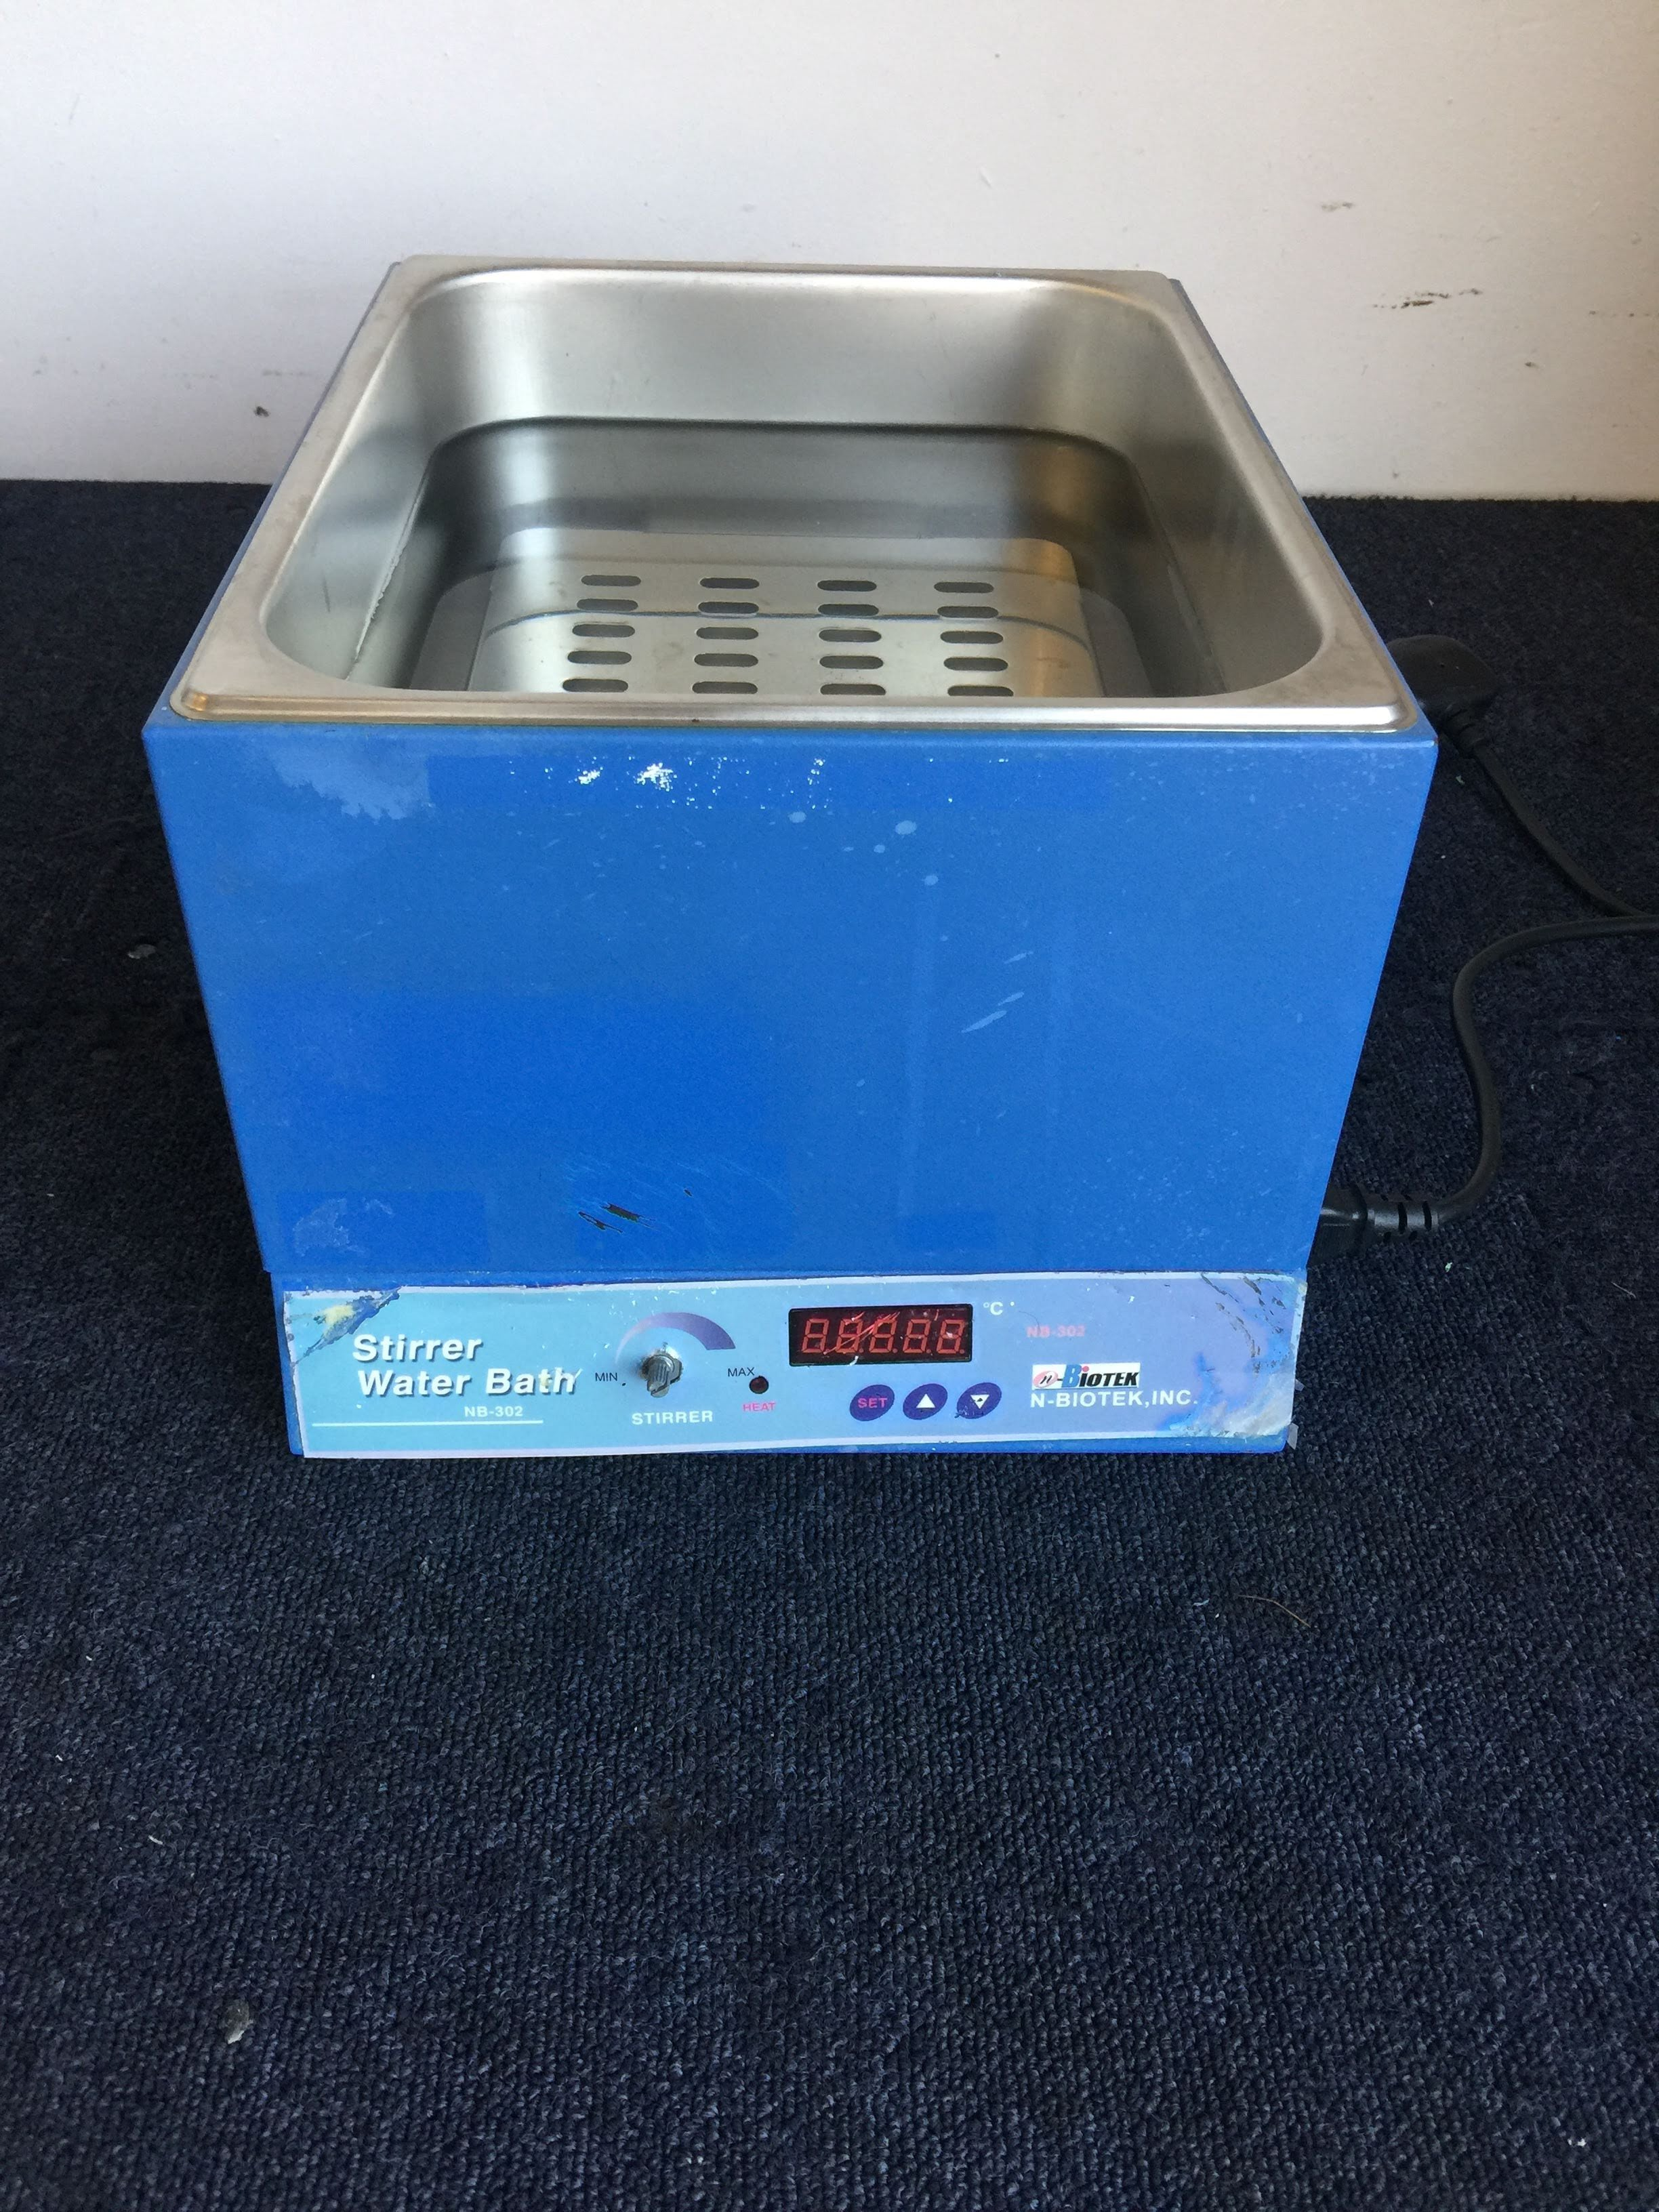 NBiotek 302 Stirrer Water Bath